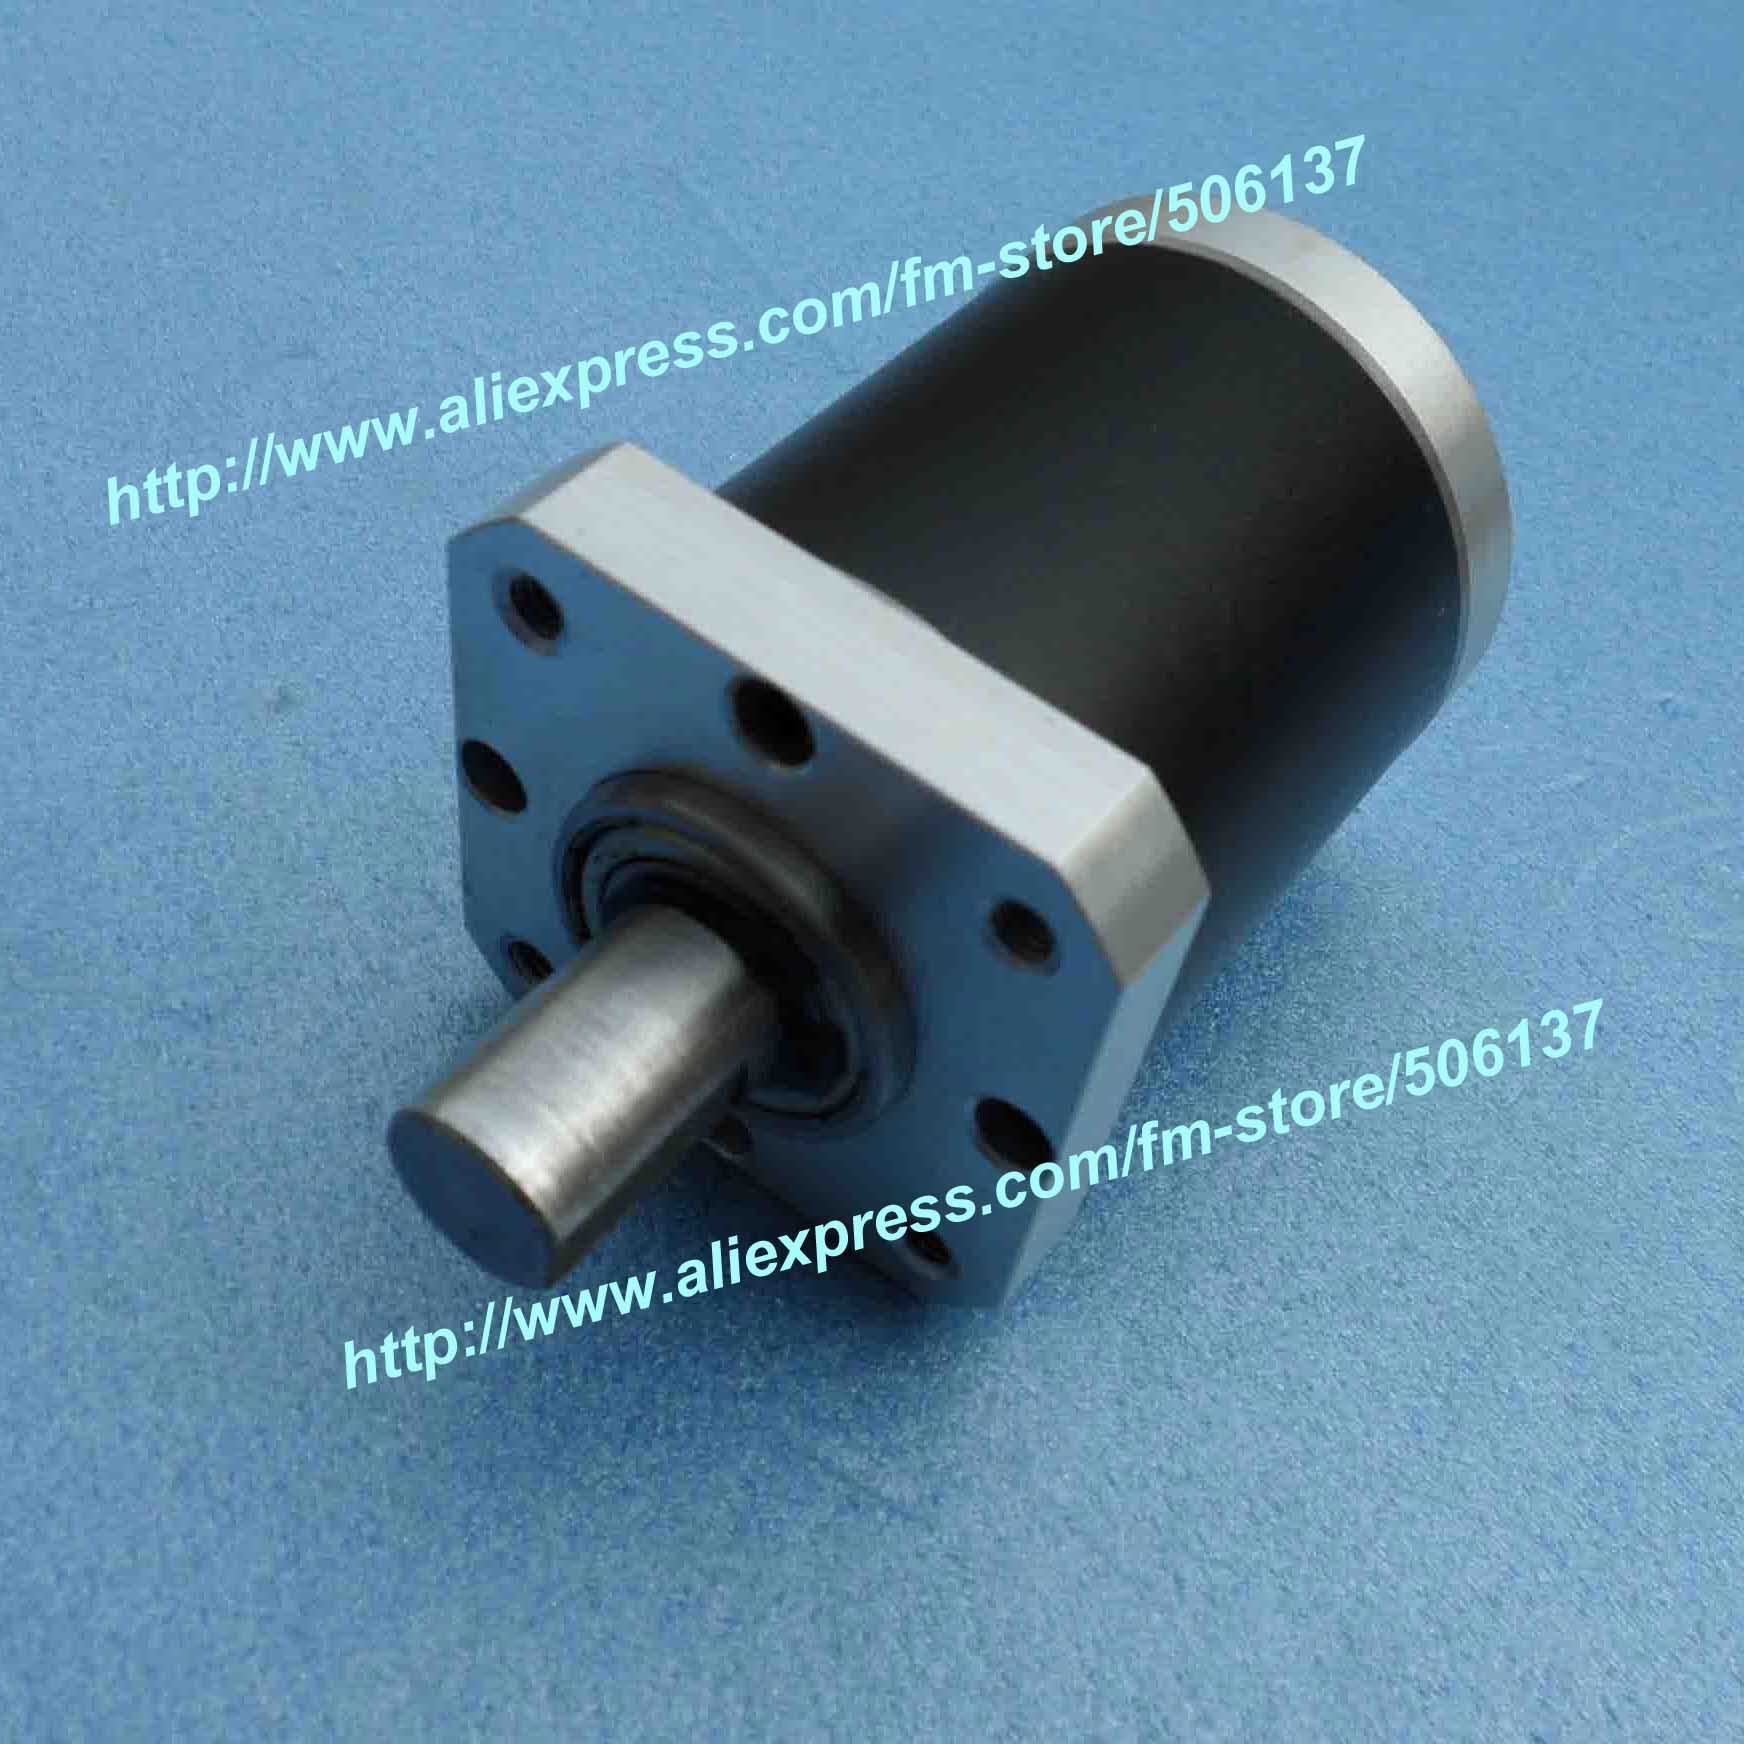 52mm Micro Planetary Speed Reducer , GP60-10 planetary gearbox,343KG.cm high torque planetary gear box 42mm micro planetary speed reducer gp42 0 planetary gearbox